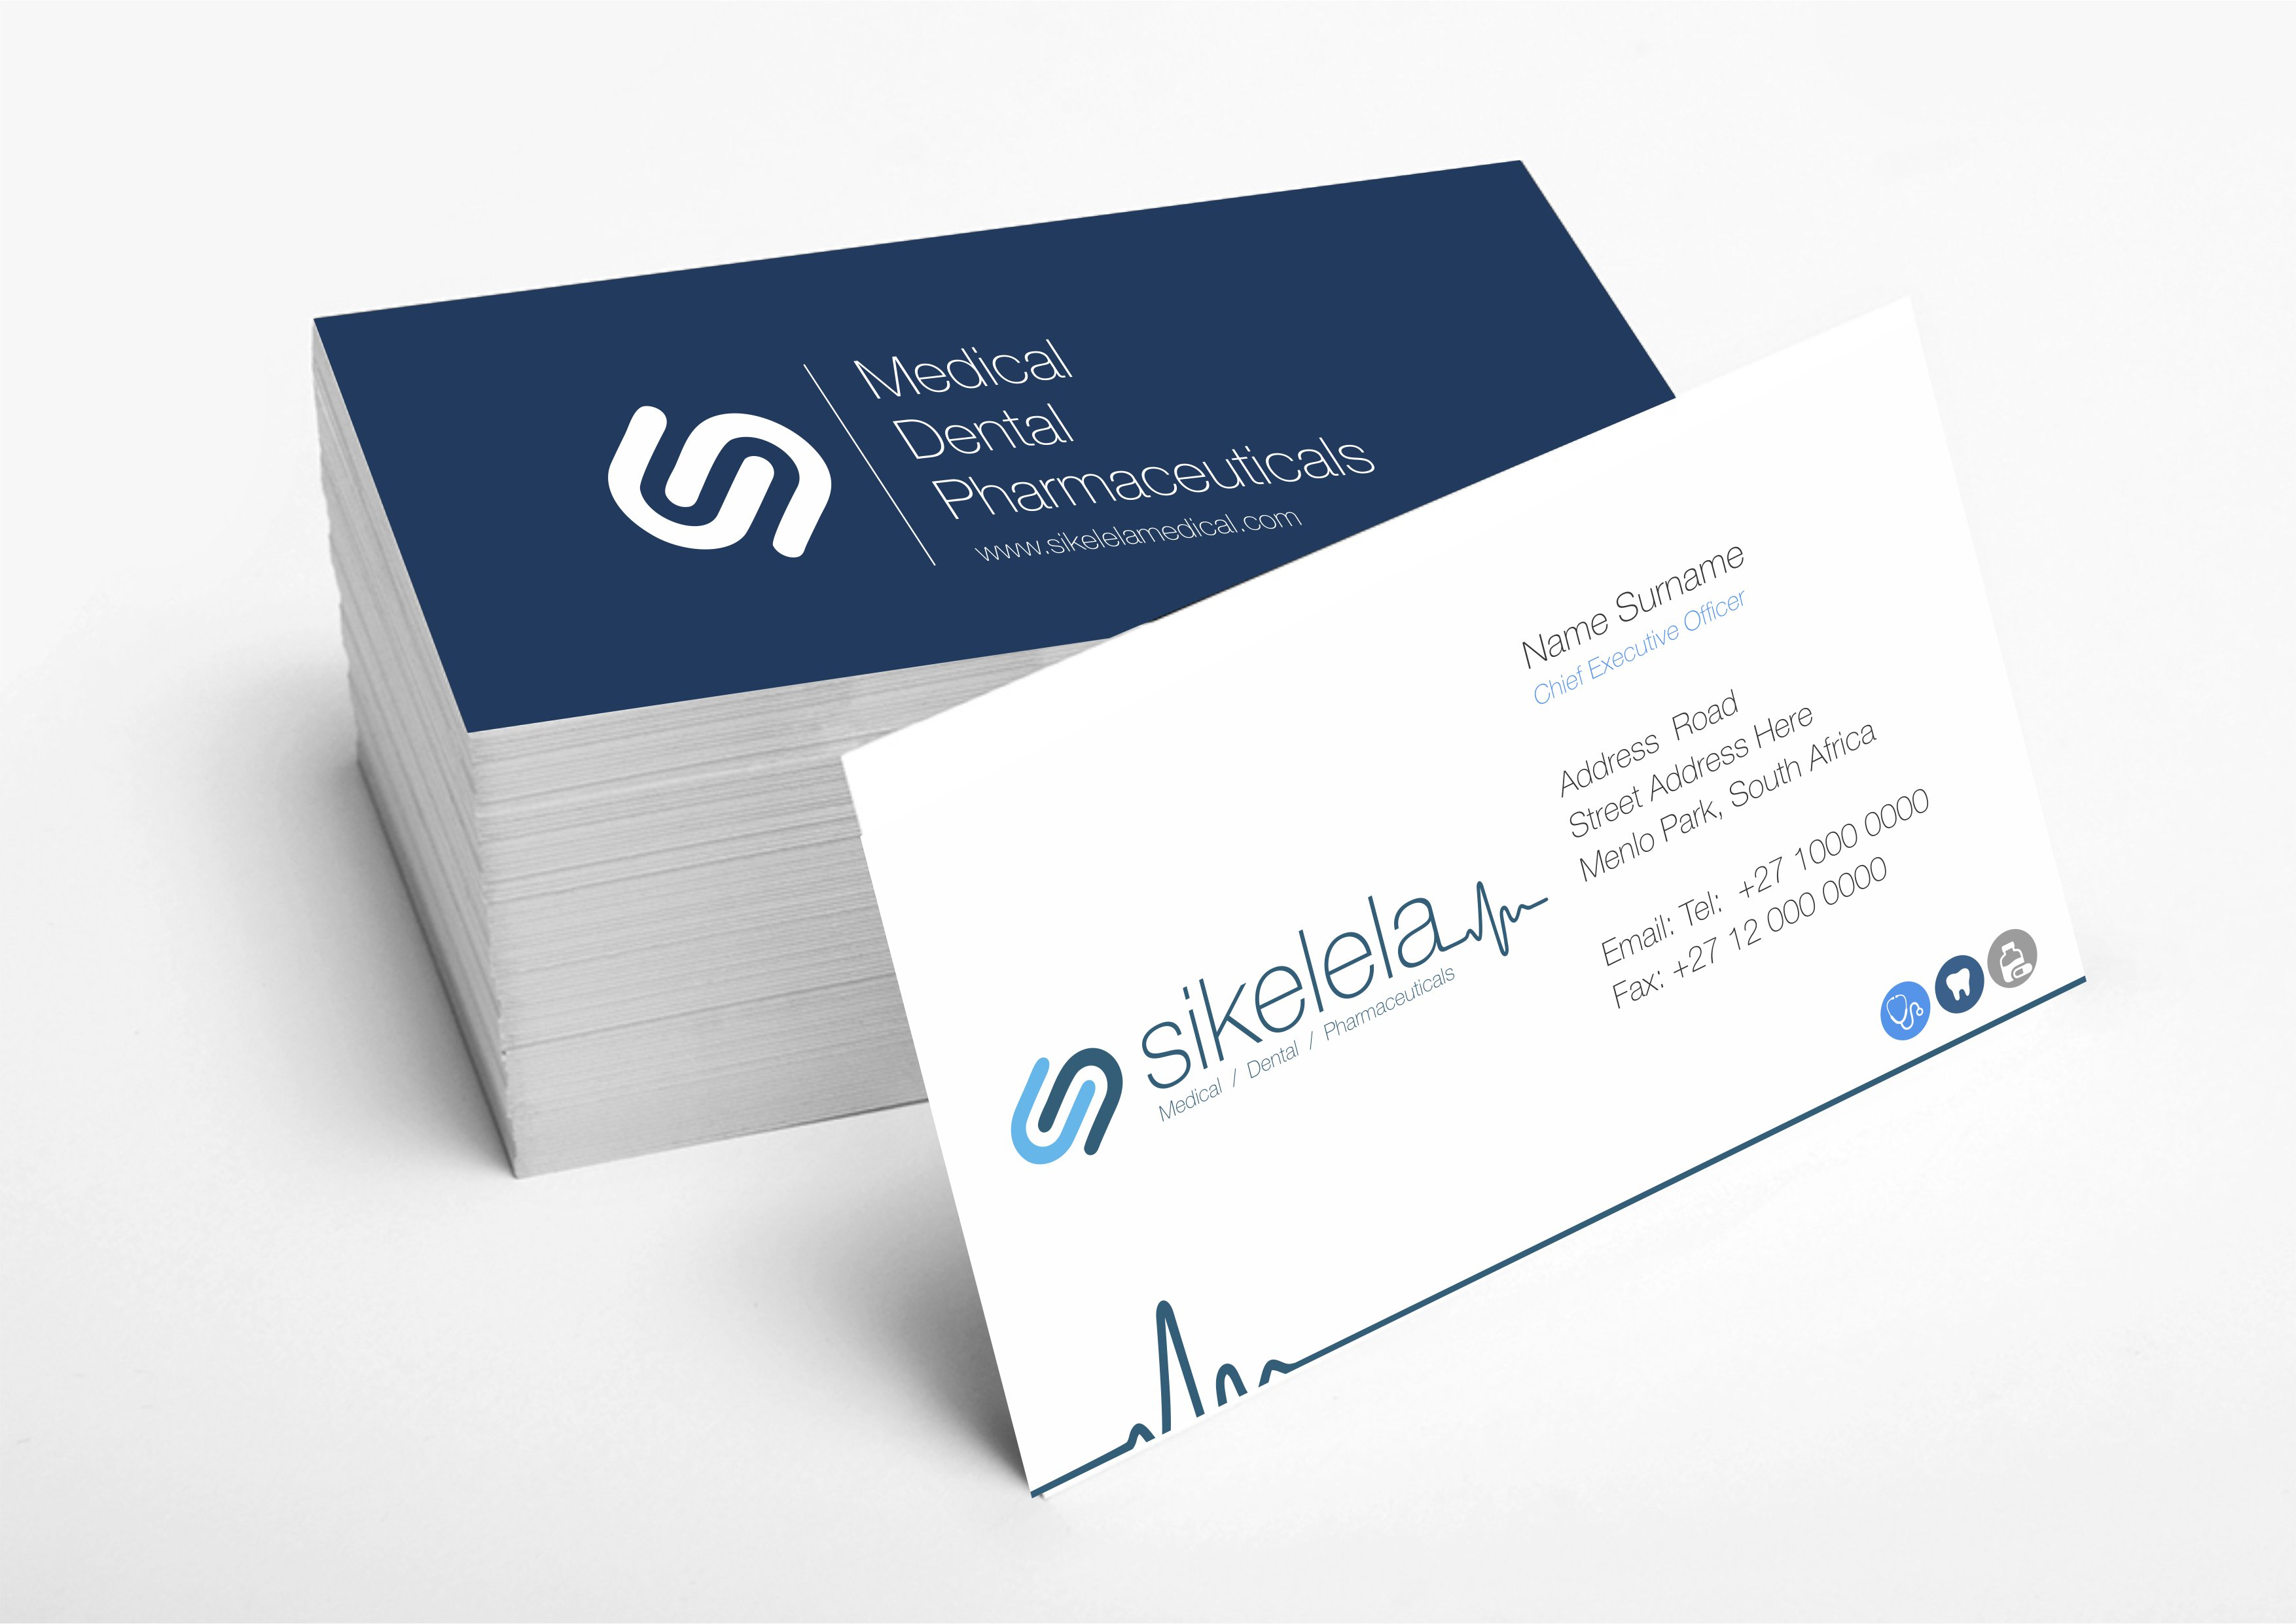 sikelela rebranding – via m – the munications pany